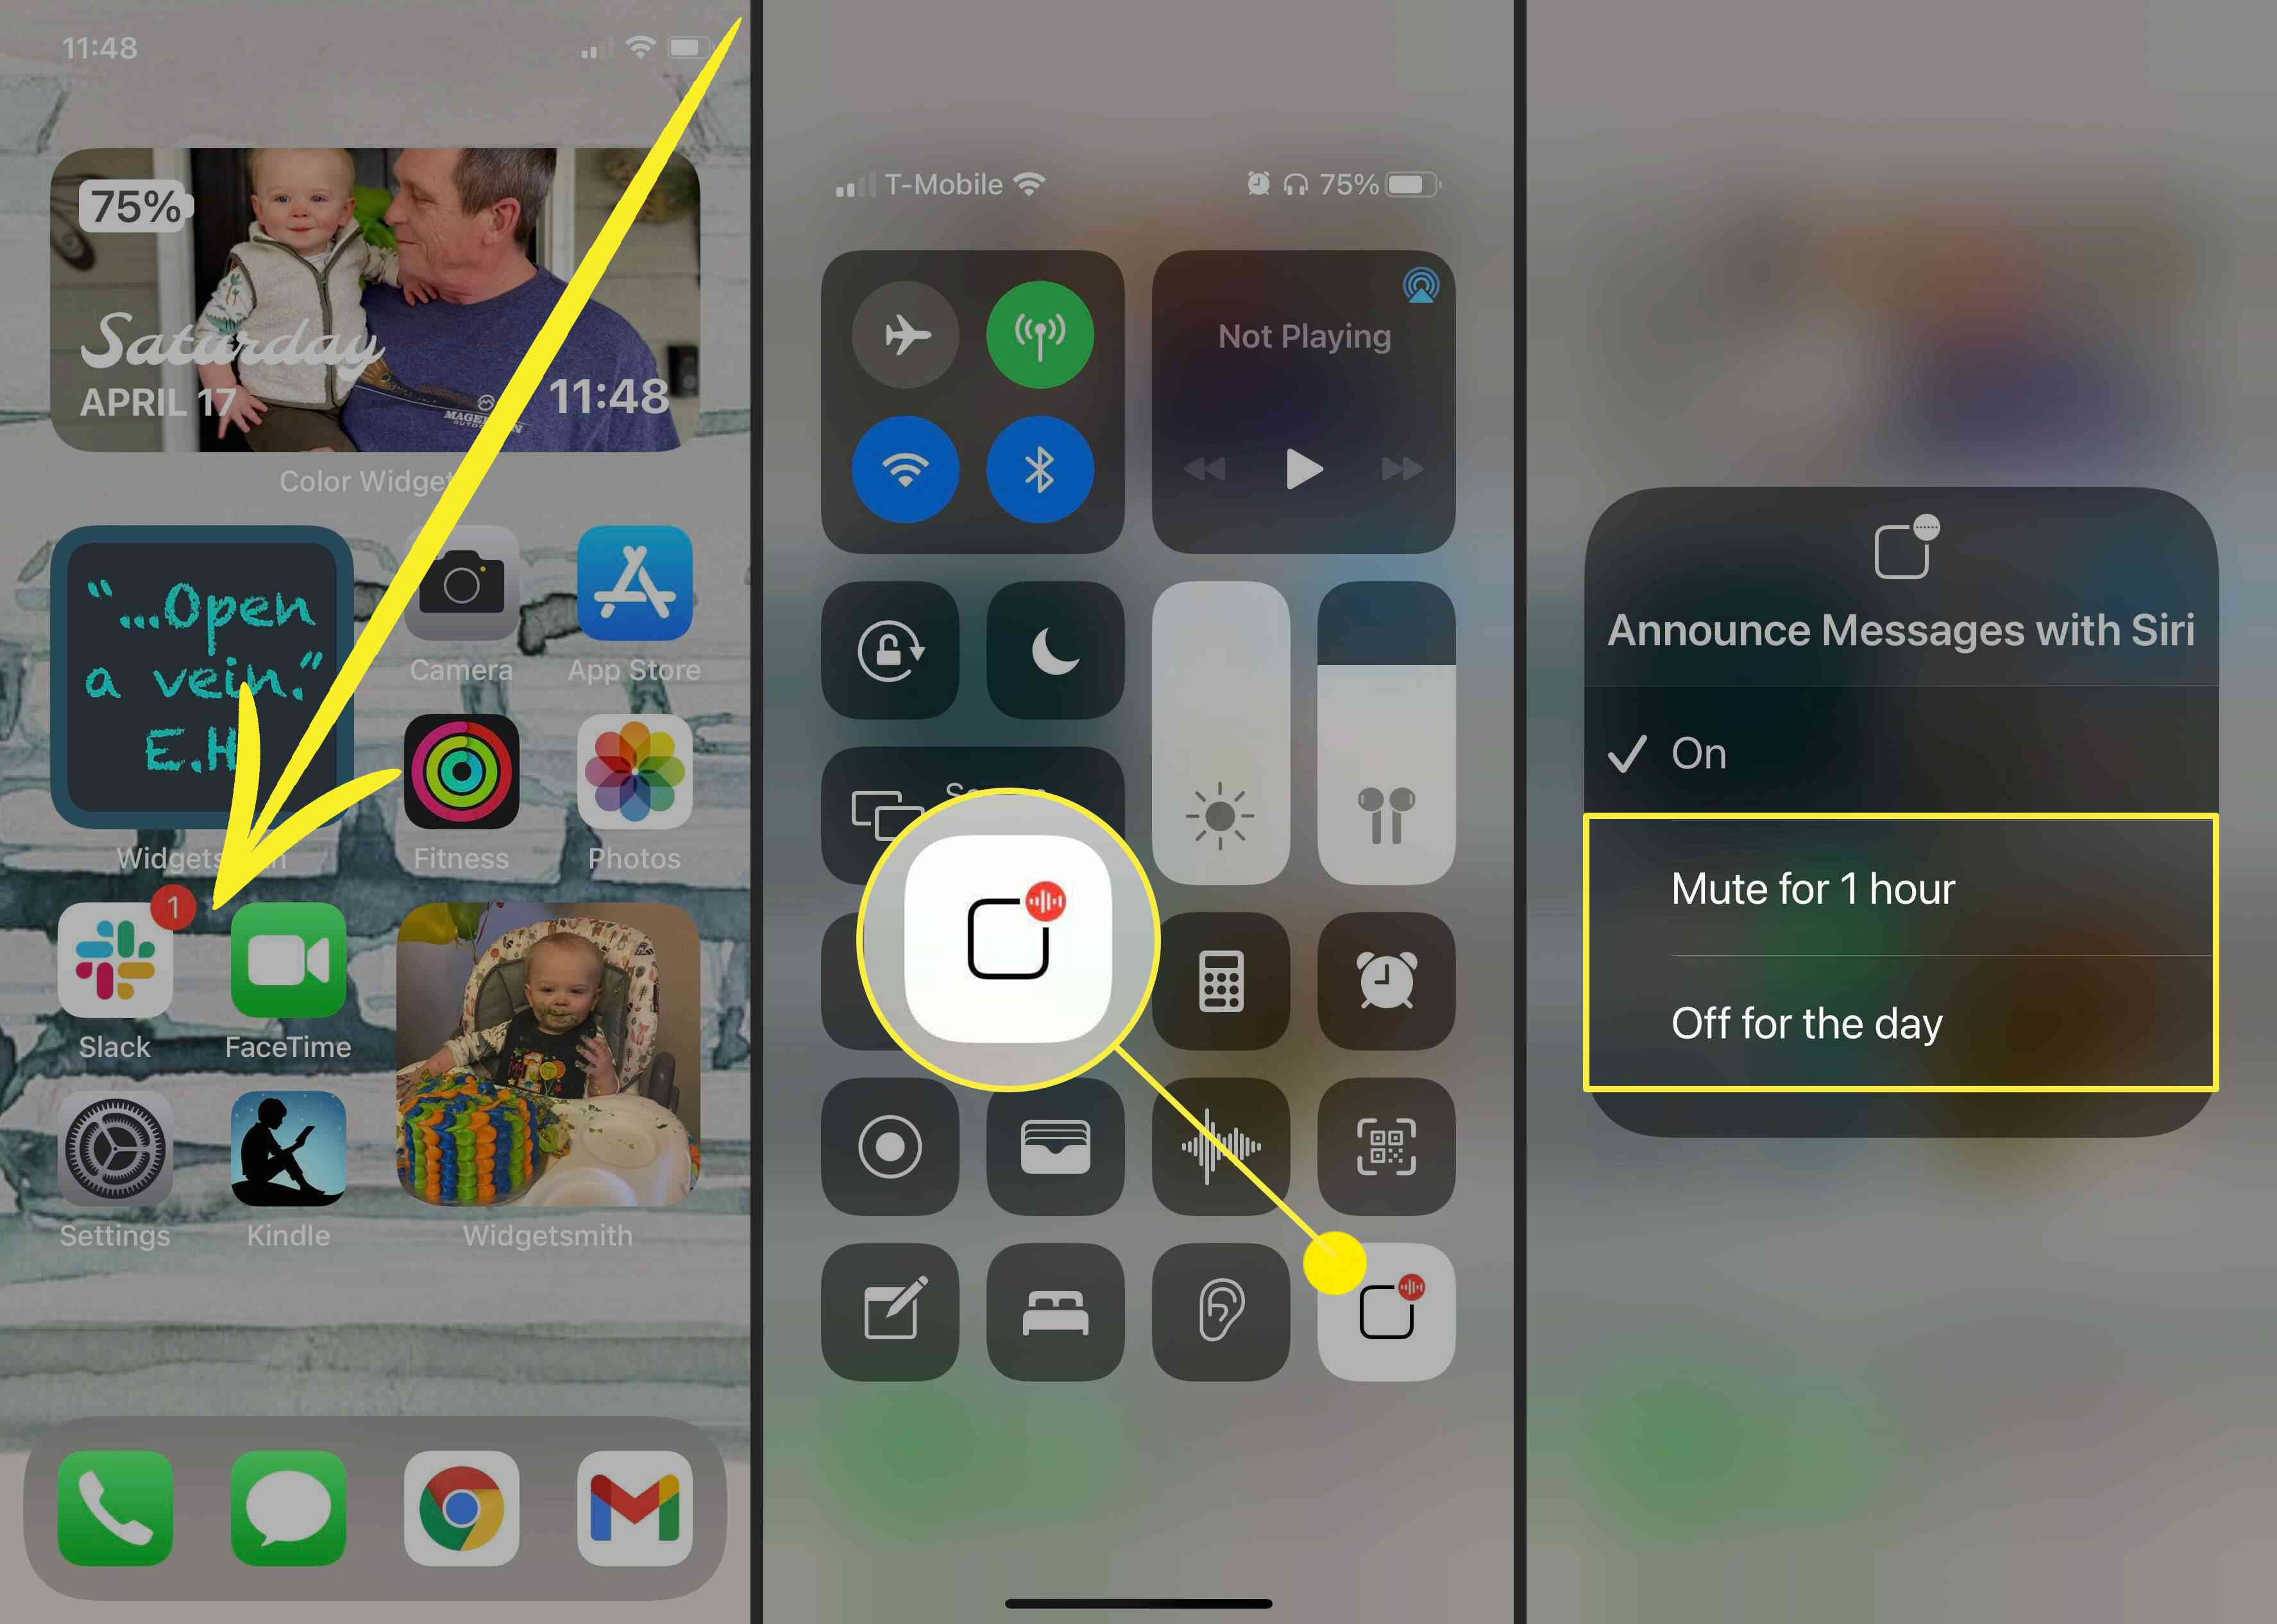 Screenshots showing how to turn off Announce Messages with Siri from the Control Center on iOS.